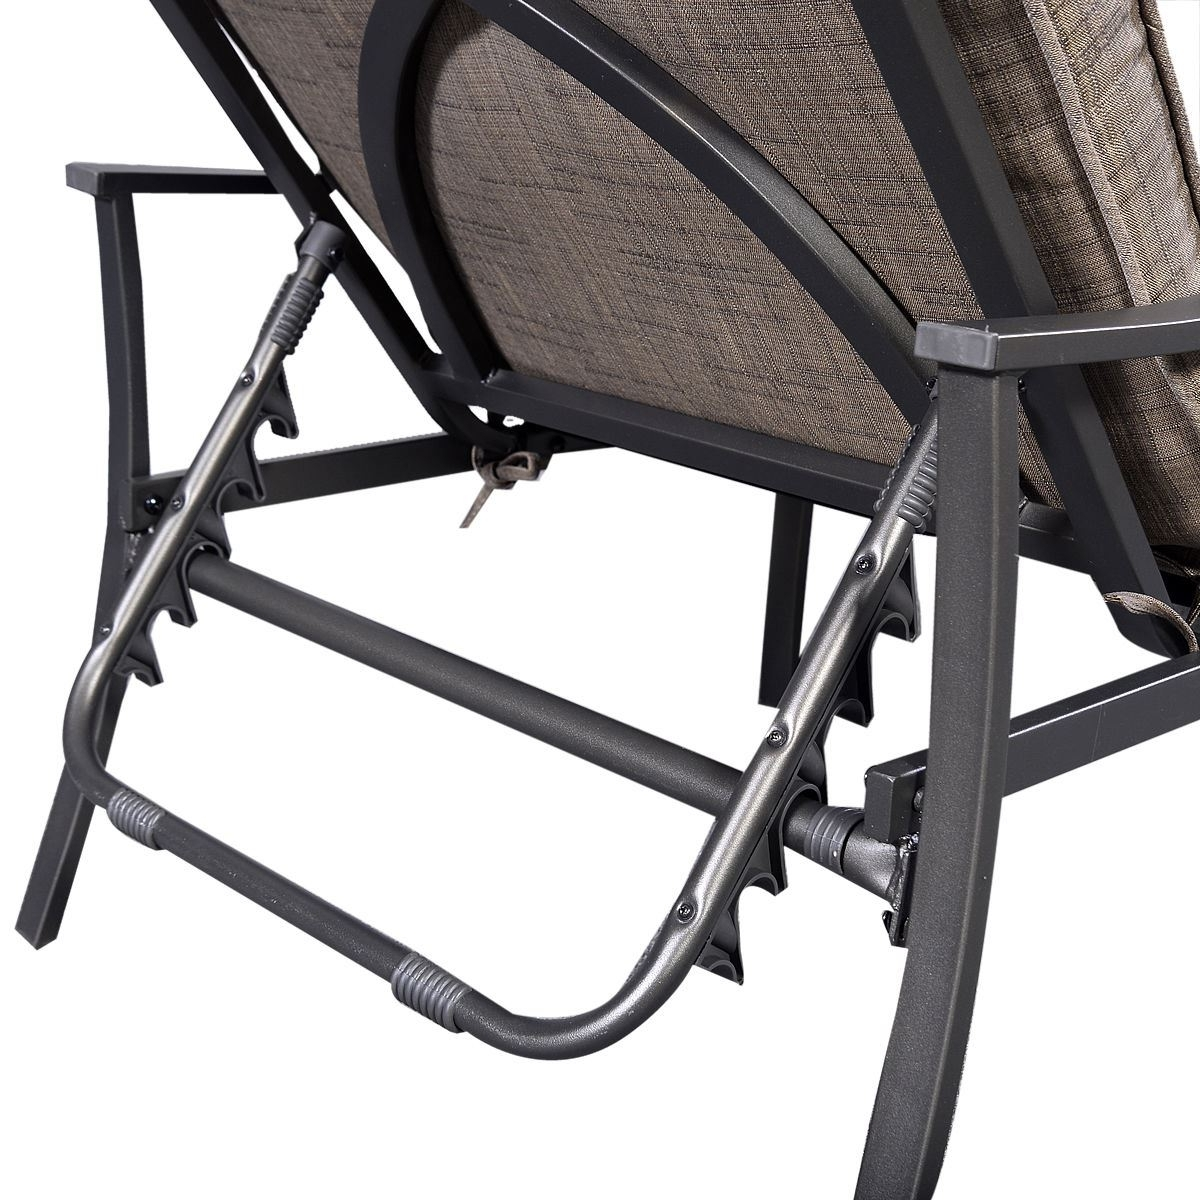 Fashionable Adjustable Pool Chaise Lounge Chair Recliners Within Furniture: Steel Frame Patio Adjustable Recliner Chair For Pool (View 7 of 15)